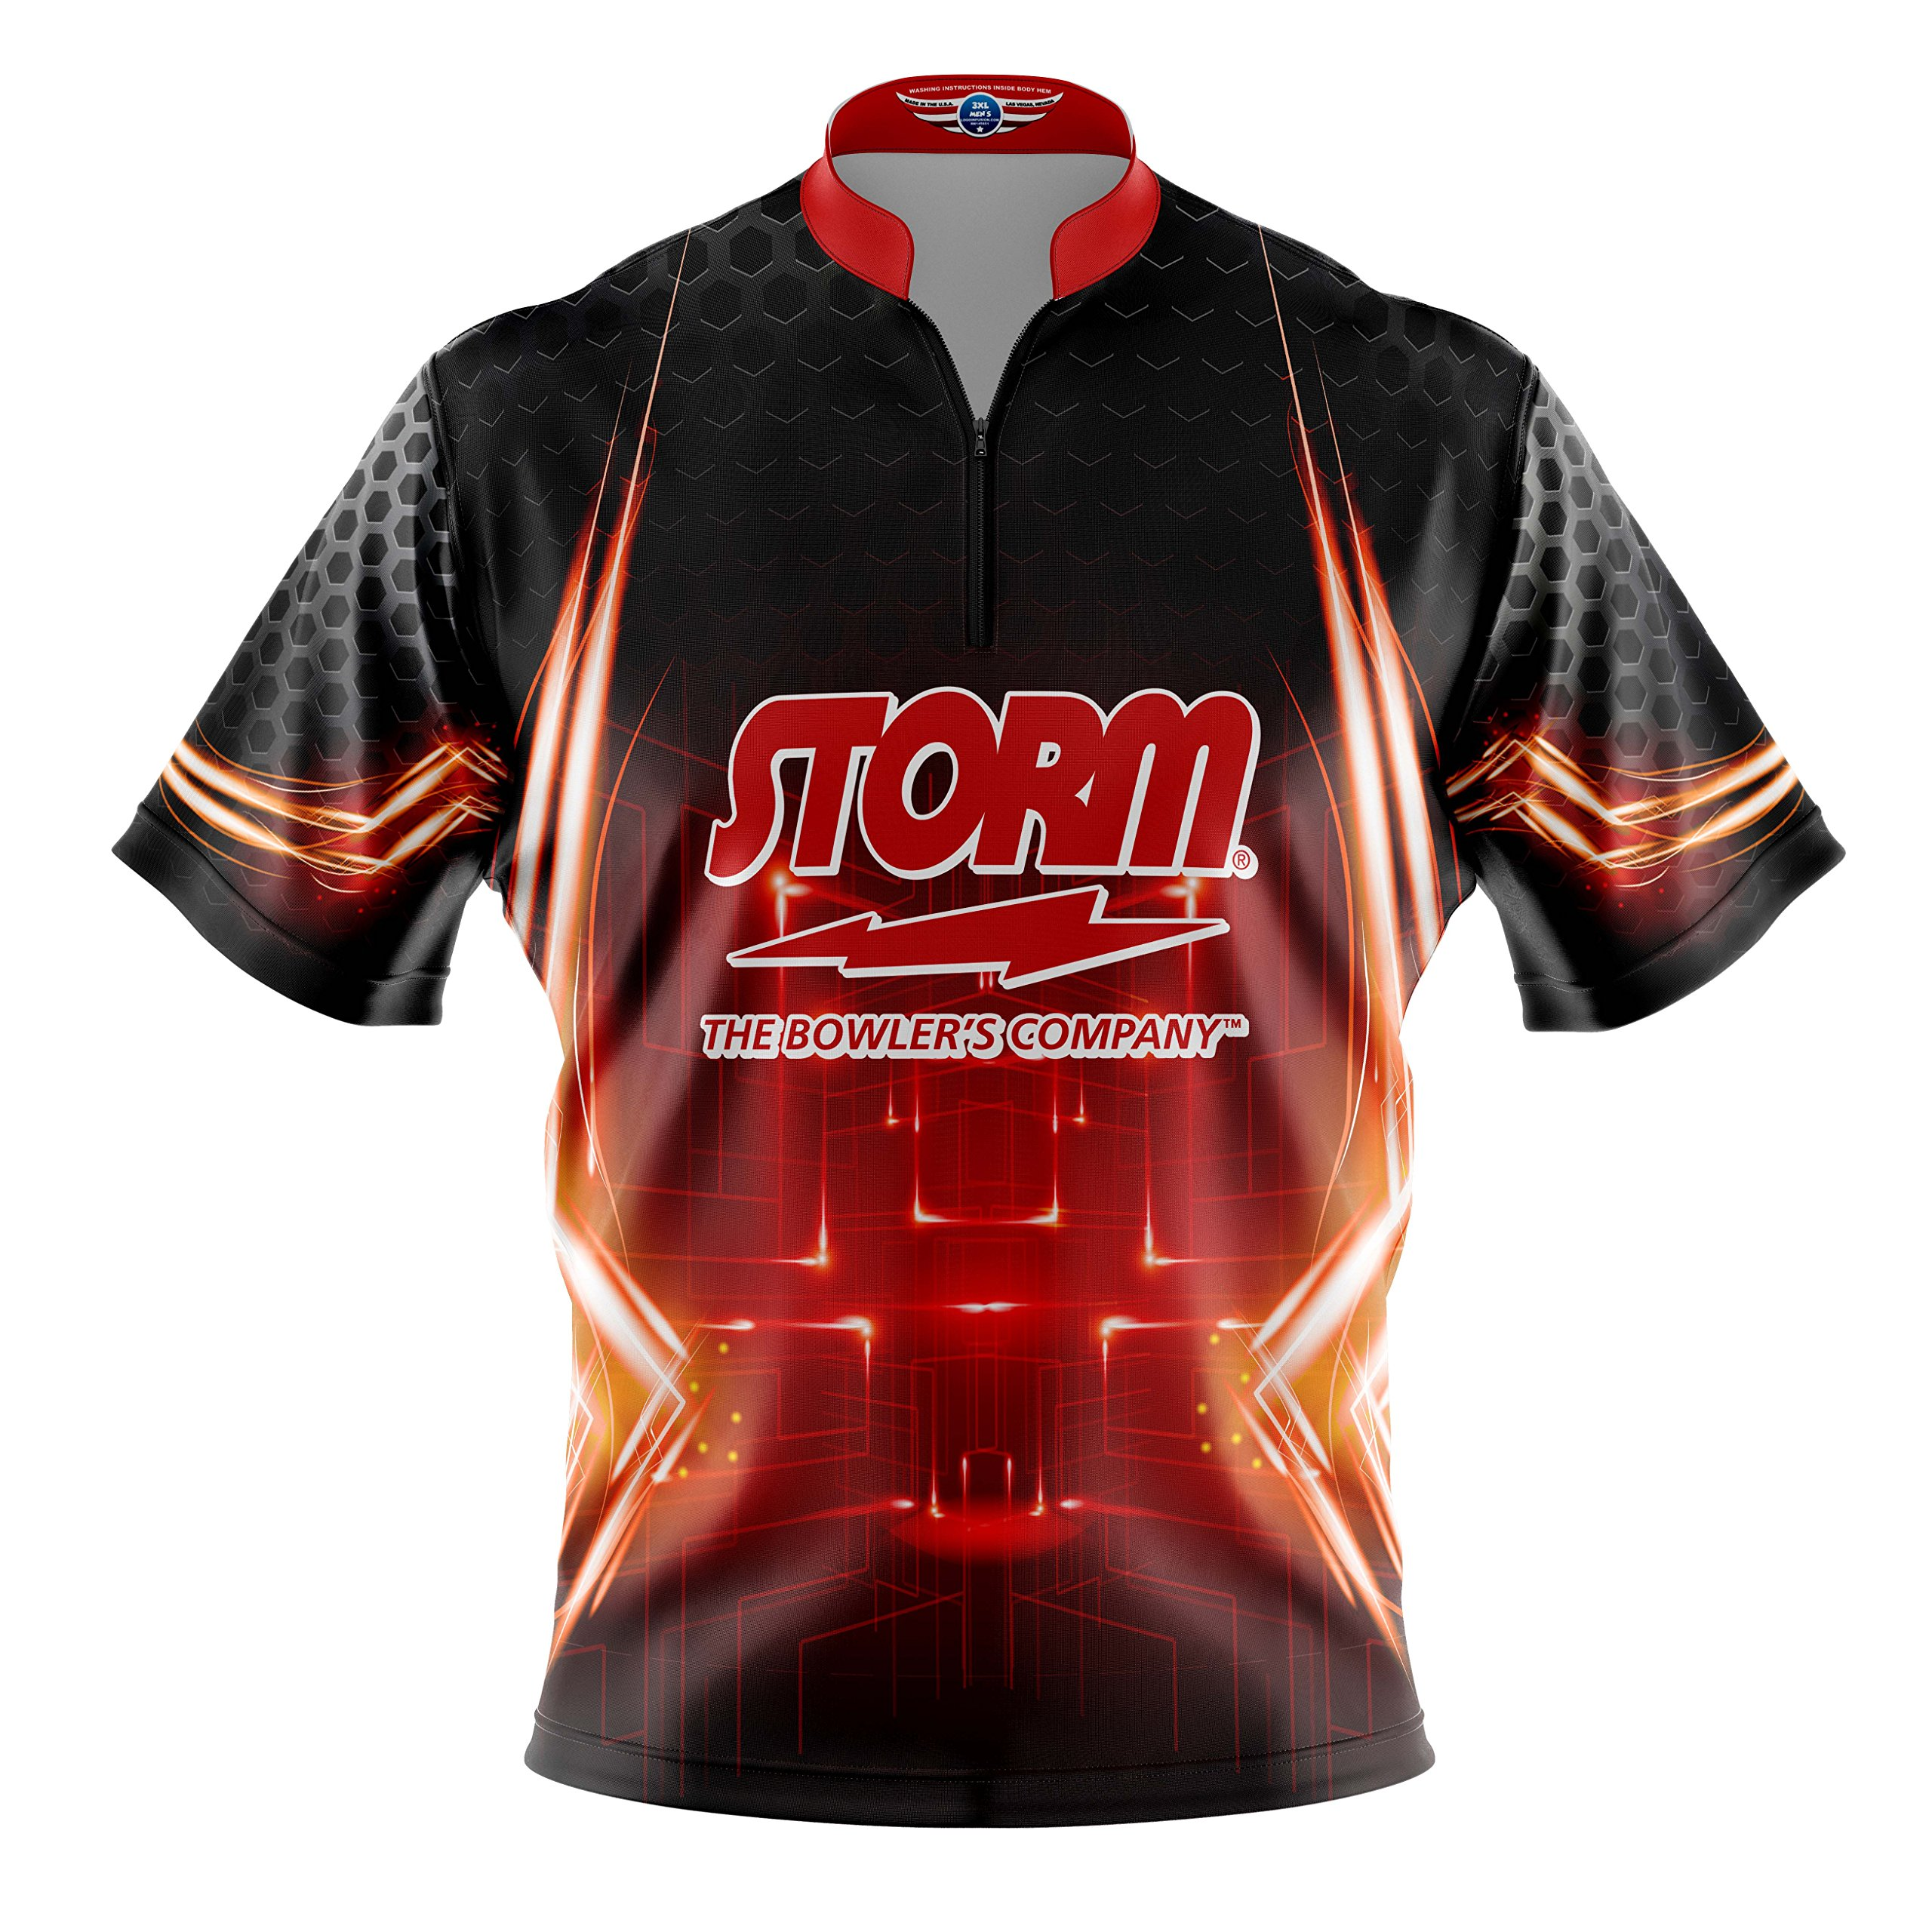 Logo Infusion Bowling Dye-Sublimated Jersey (Sash Collar) - Storm Style 0247 - Sizes S-4XL (2XL) by Logo Infusion